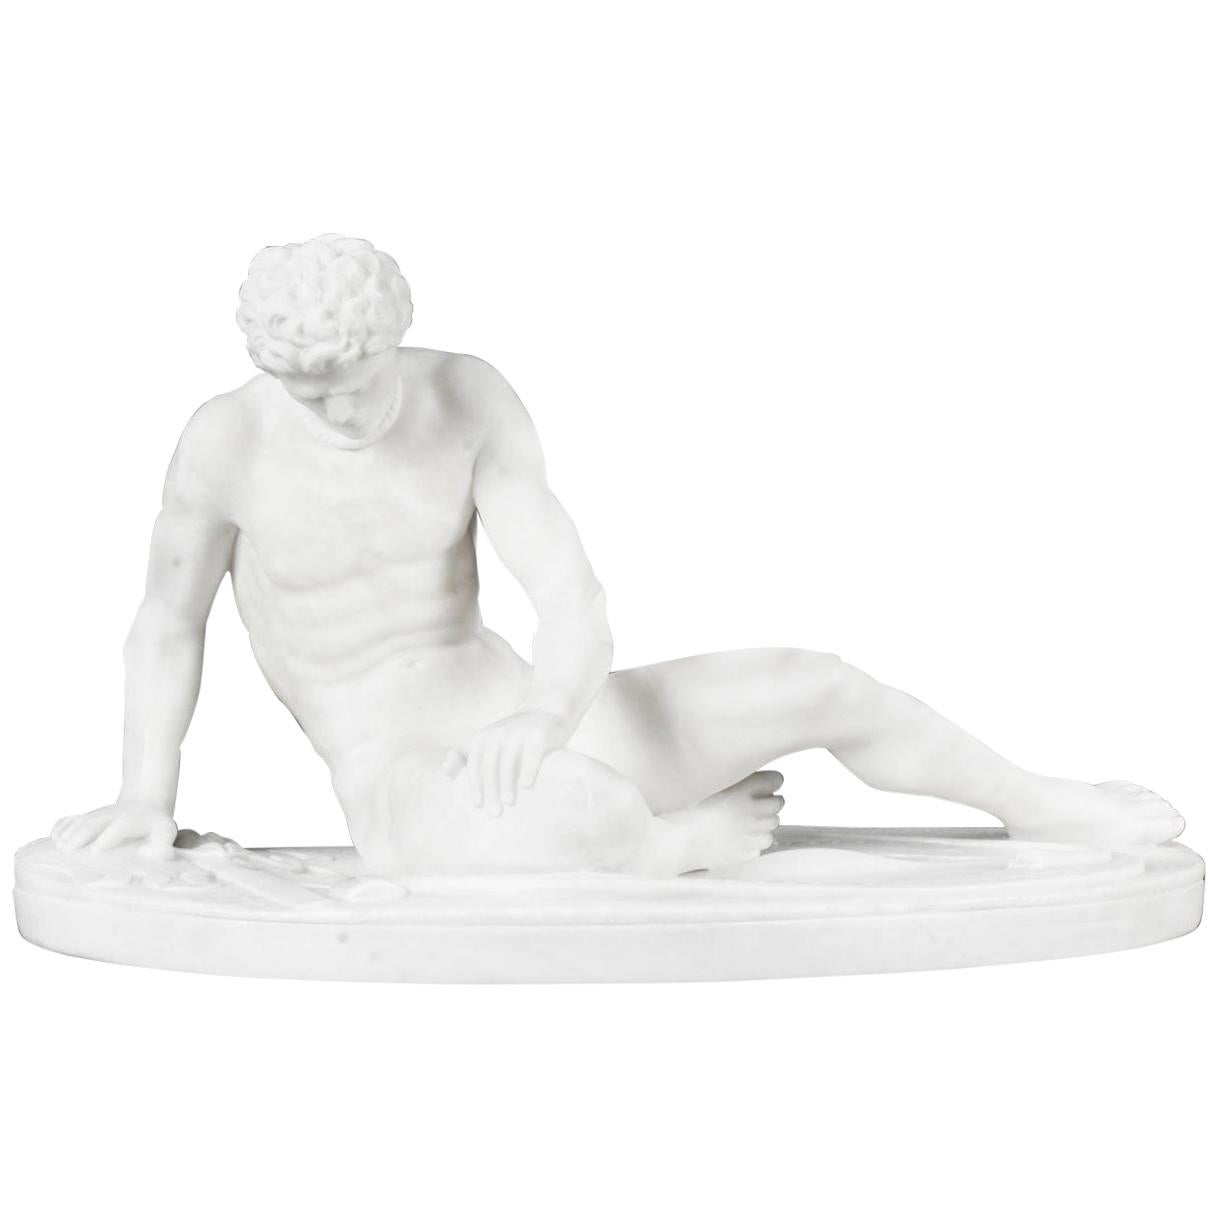 Antique Italian Grand Tour Alabaster Sculpture of the Dying Gaul, 19th Century